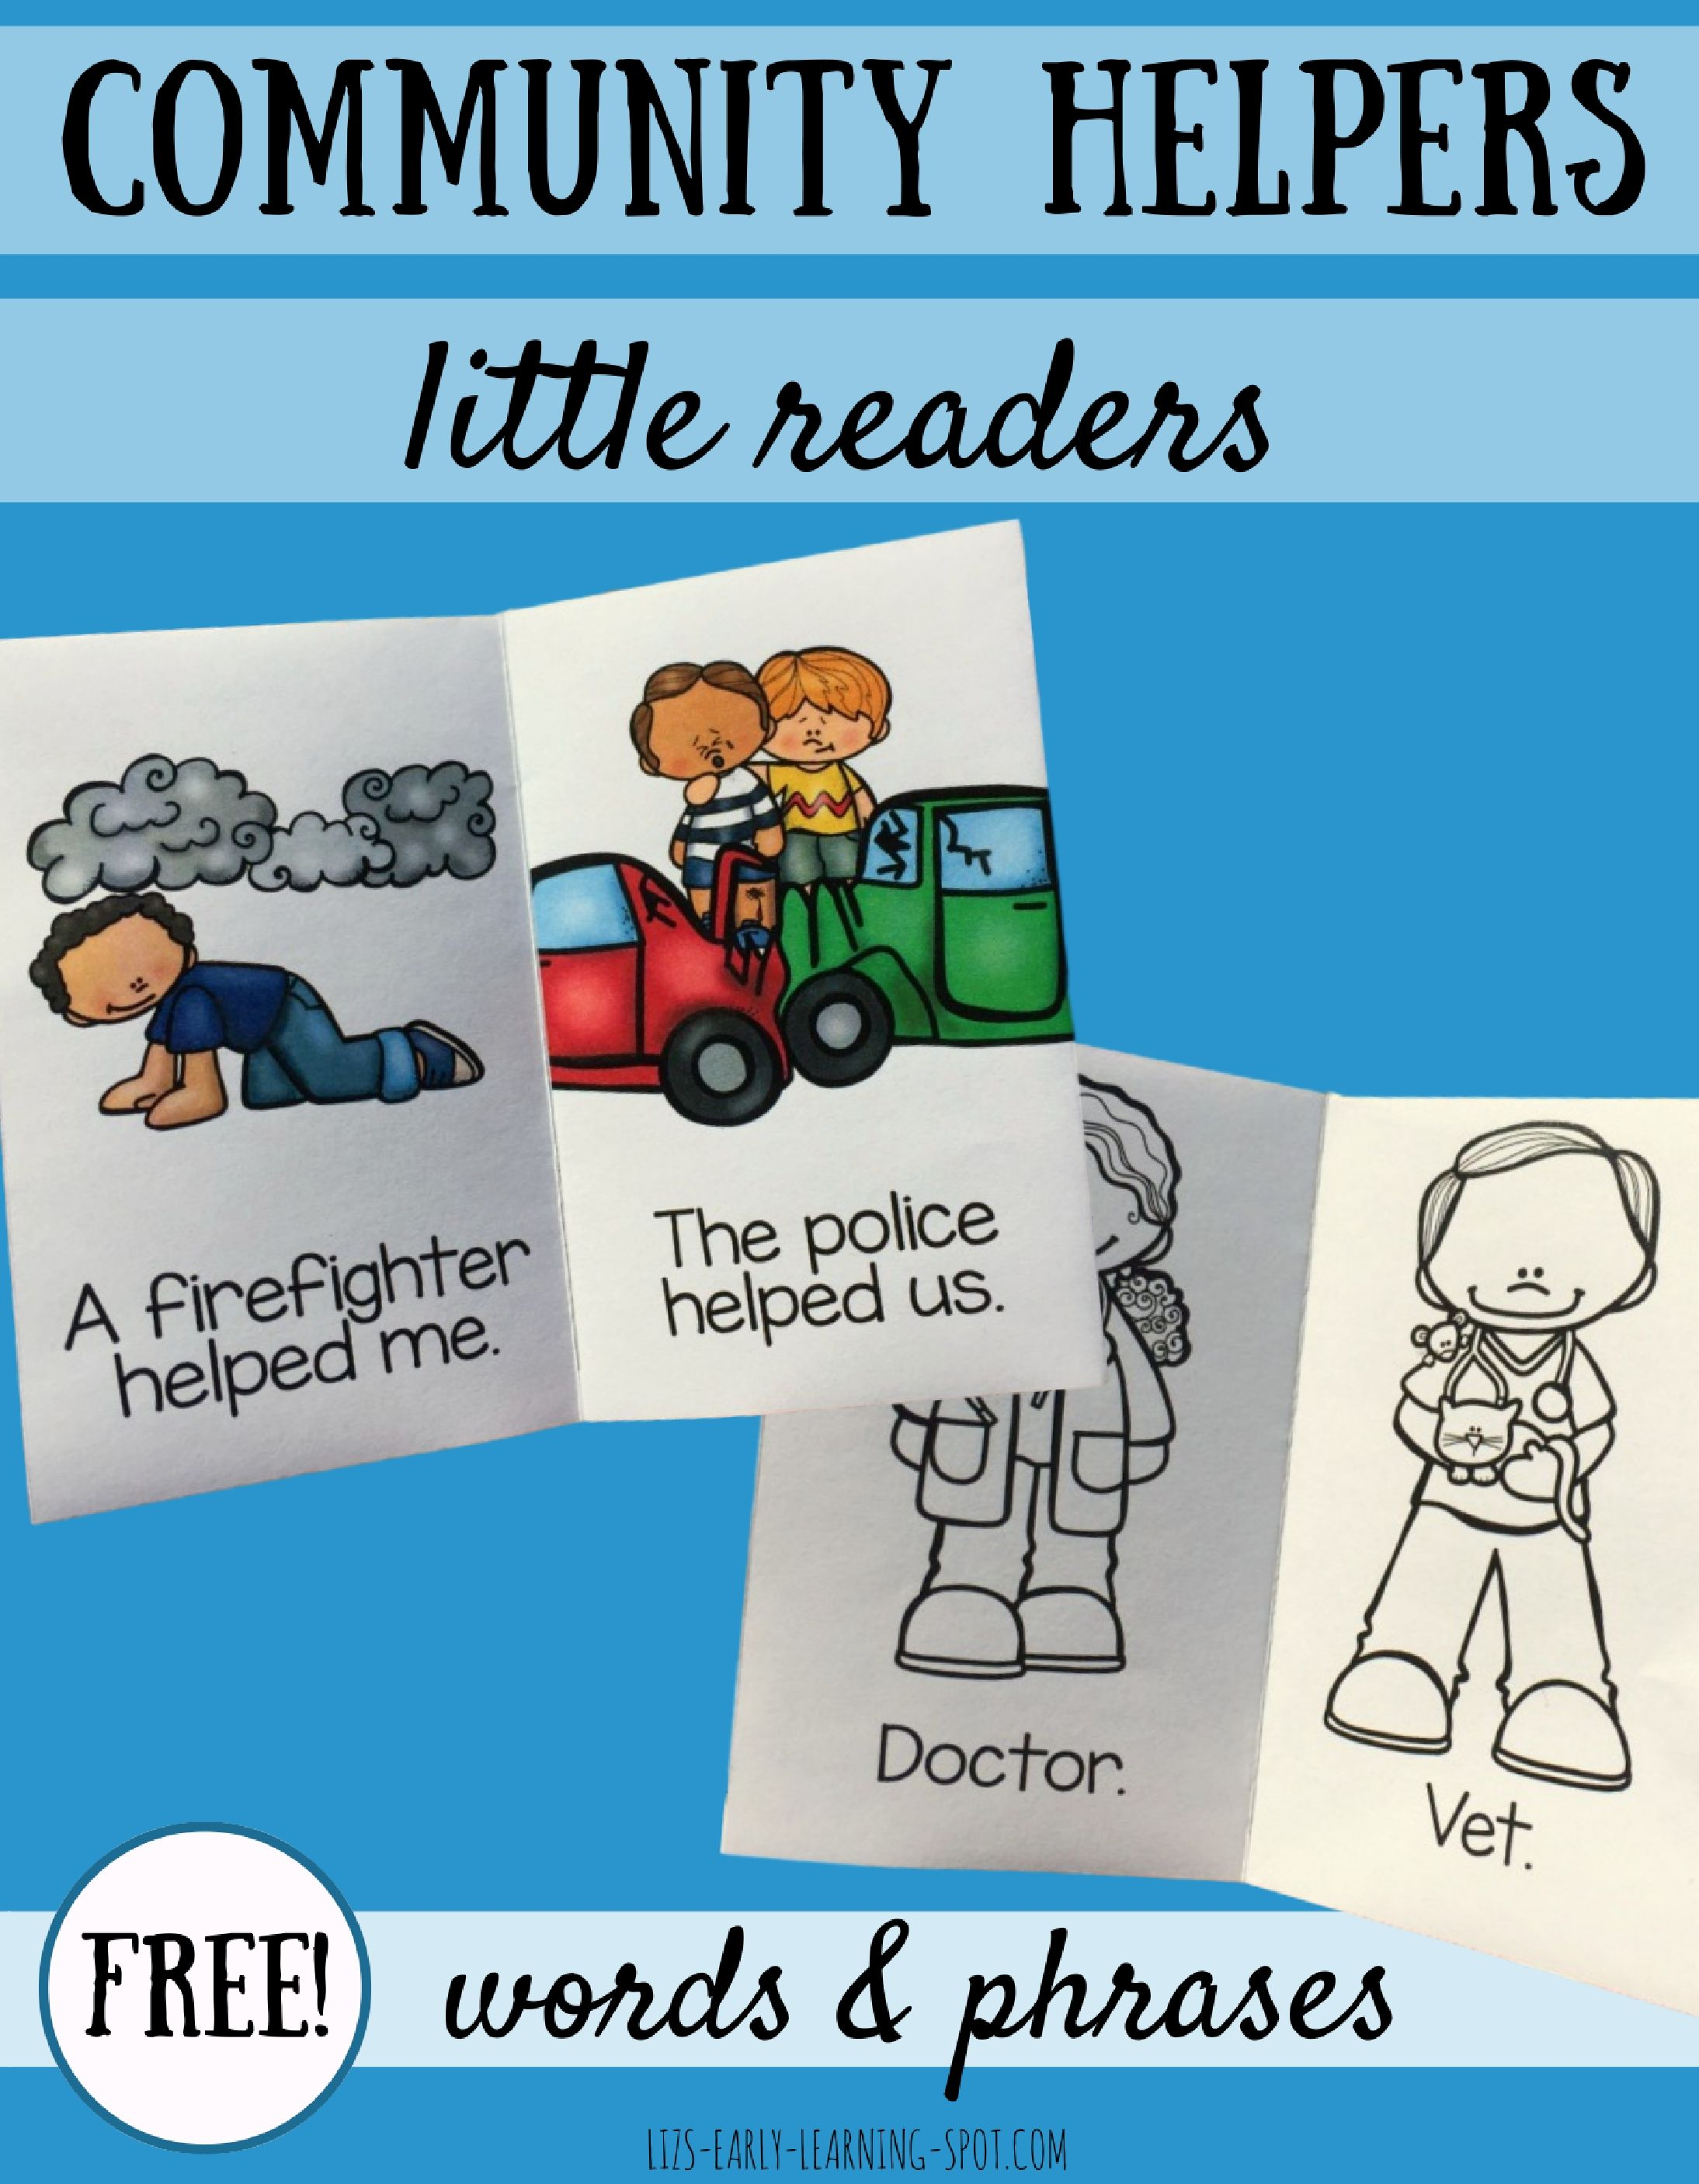 Community Helpers Little Readers